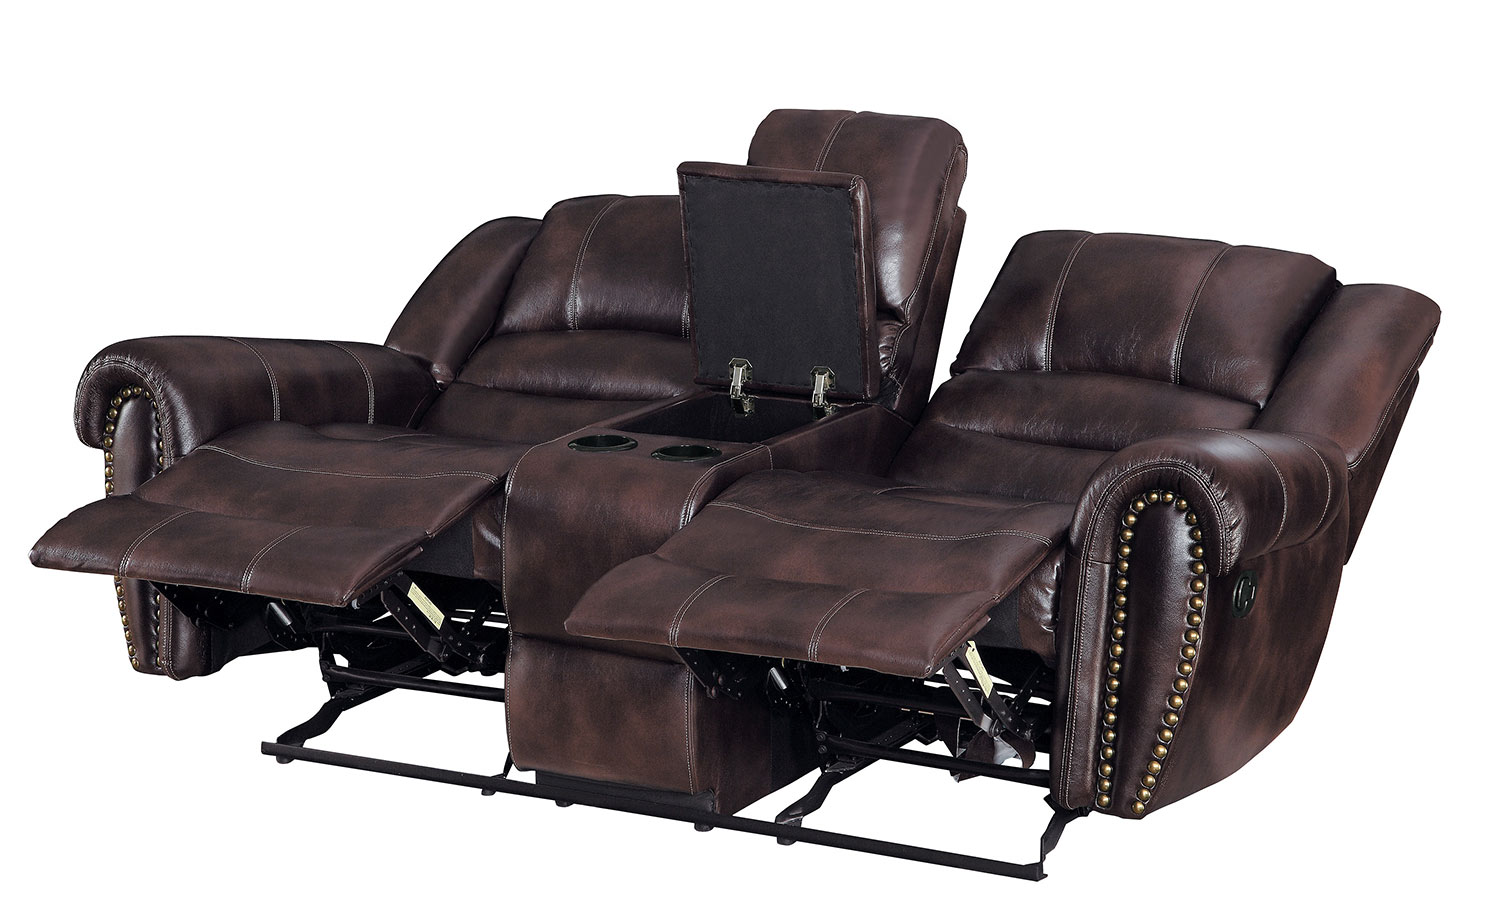 Homelegance Center Hill Double Glider Reclining Love Seat With Center Console - Dark Brown